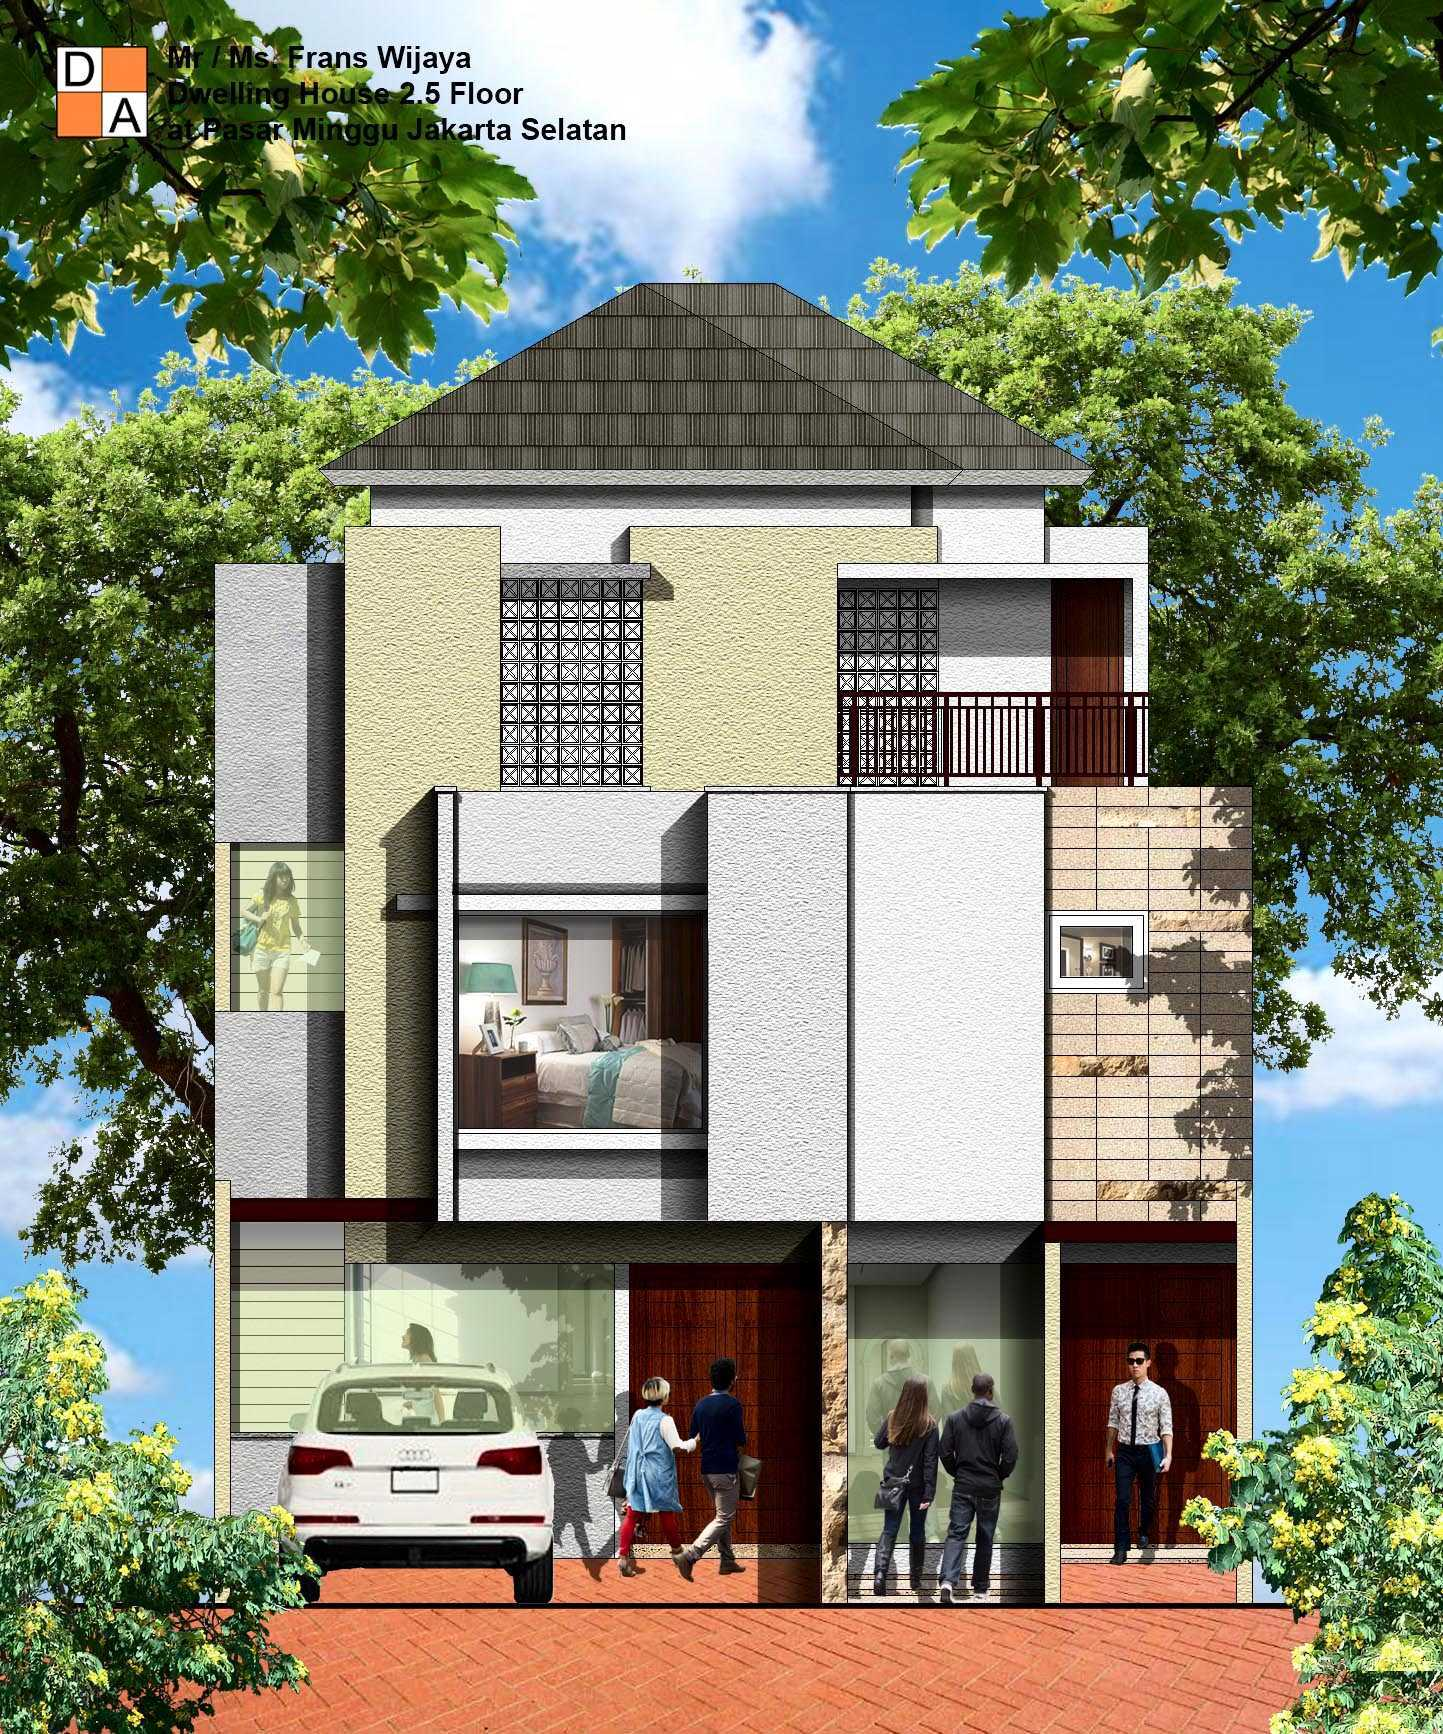 Photo Front View Rendering Dwelling House 2 5 And Shop Modern